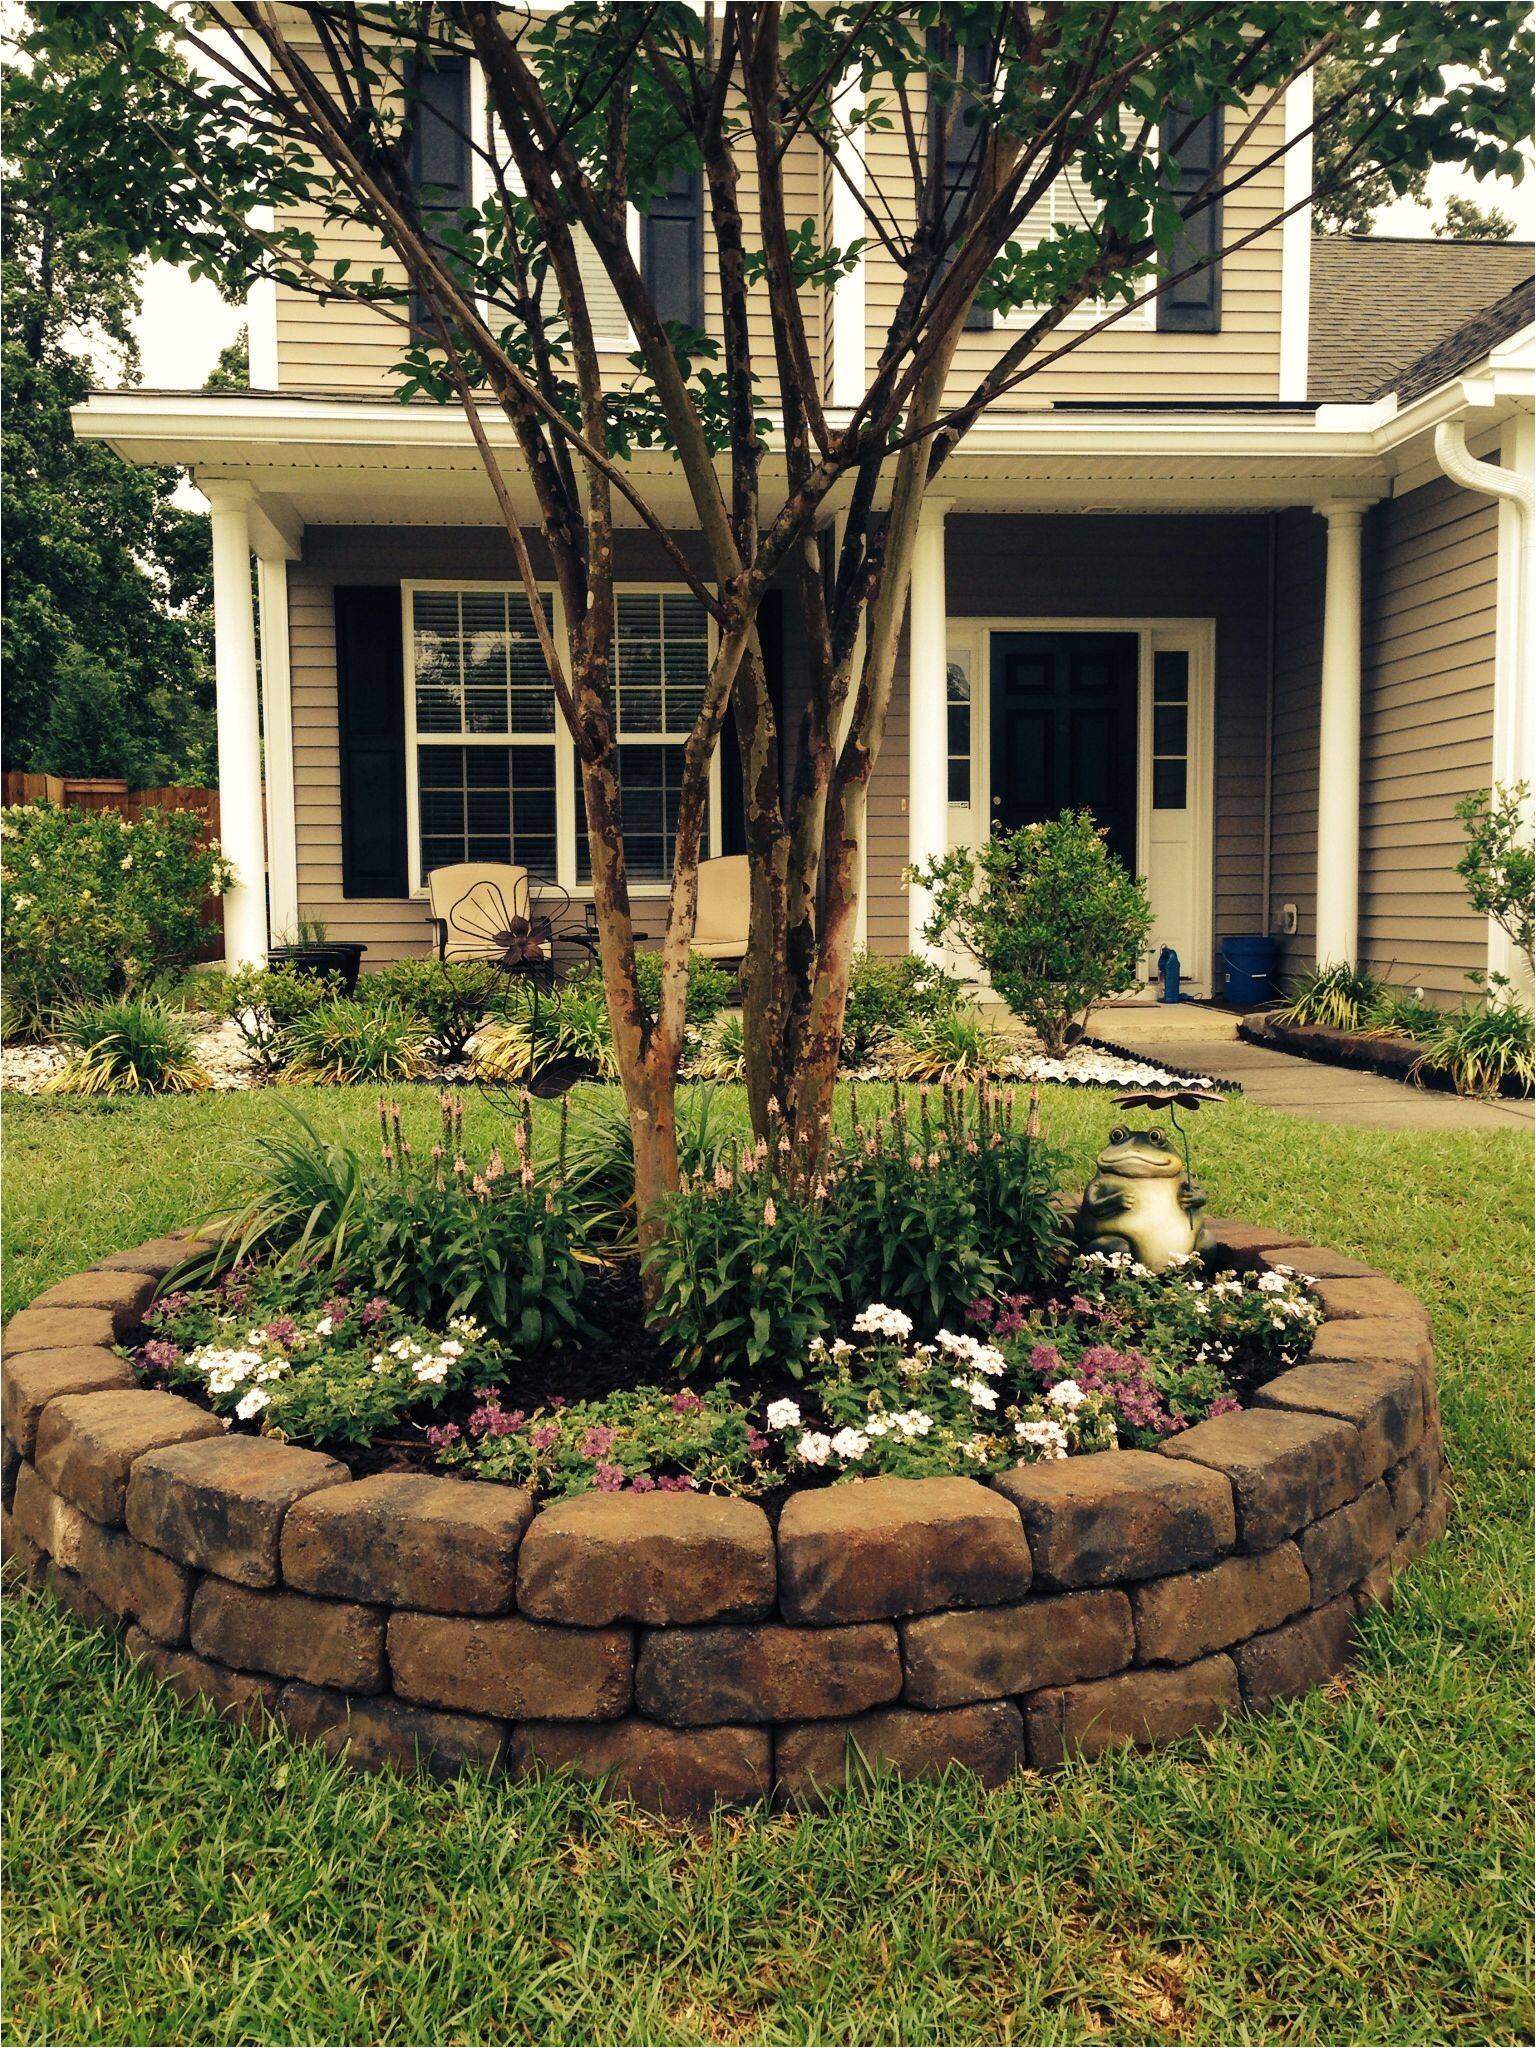 browse landscaping ideas discover eight landscape design rules and get tips from landscape design experts get design ideas for creating your dream front